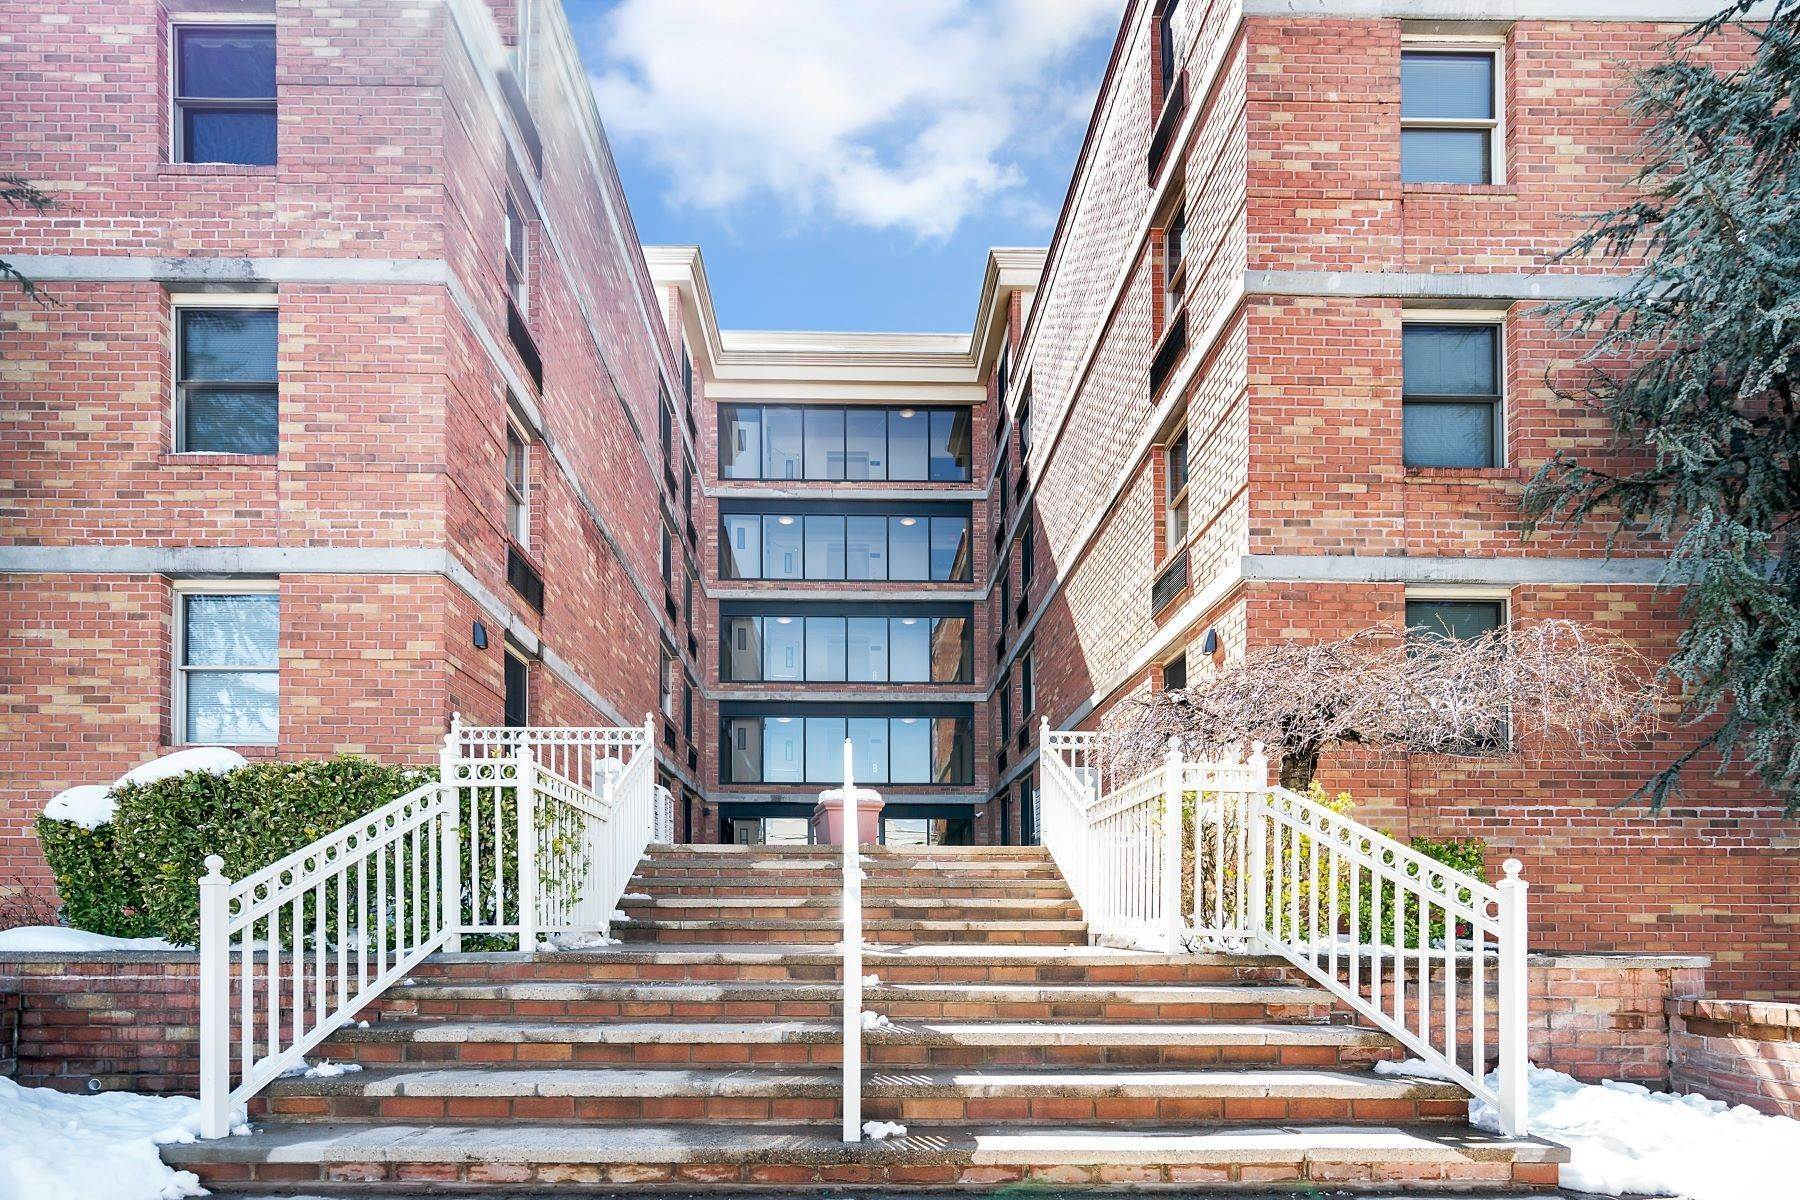 Other Residential Homes à Welcome to Peninsula Court. Spacious 2 bedroom in Elevator building . 22-34 West 25th Street, Unit 2B, Bayonne, New Jersey 07002 États-Unis